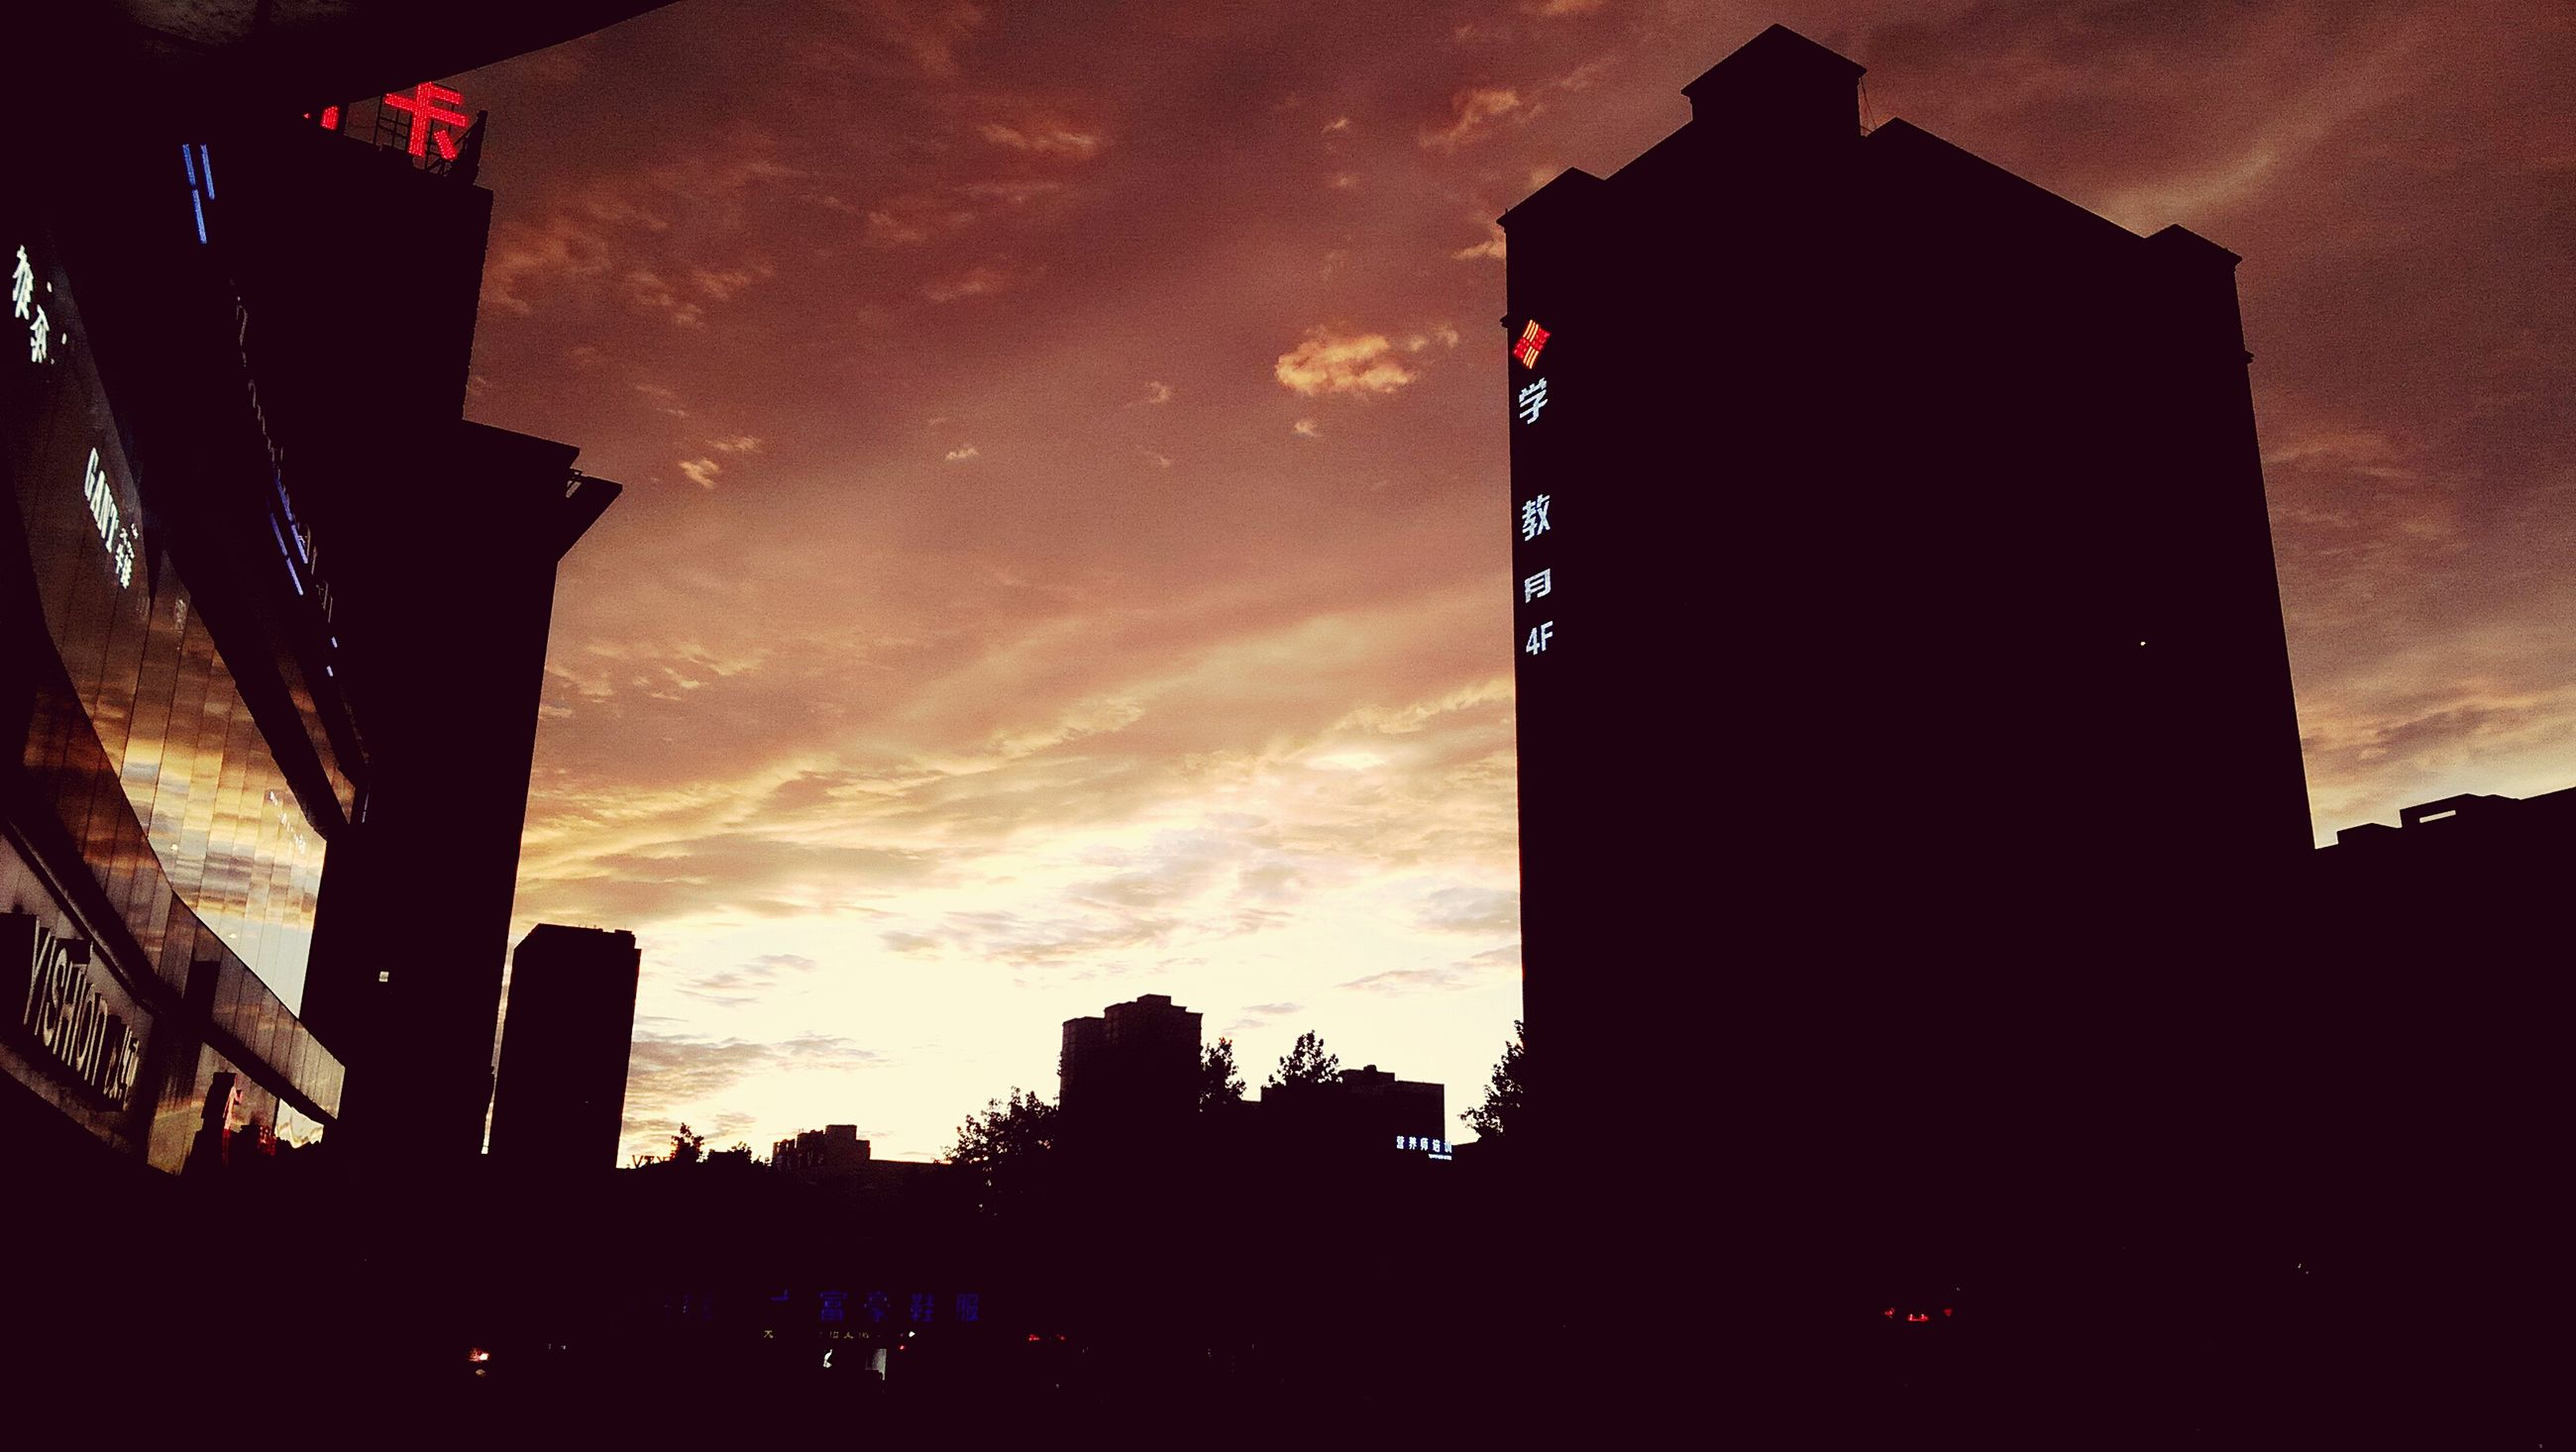 silhouette, building exterior, architecture, built structure, low angle view, sky, sunset, city, building, dusk, dark, cloud - sky, outdoors, outline, street light, cloud, no people, tower, residential building, residential structure